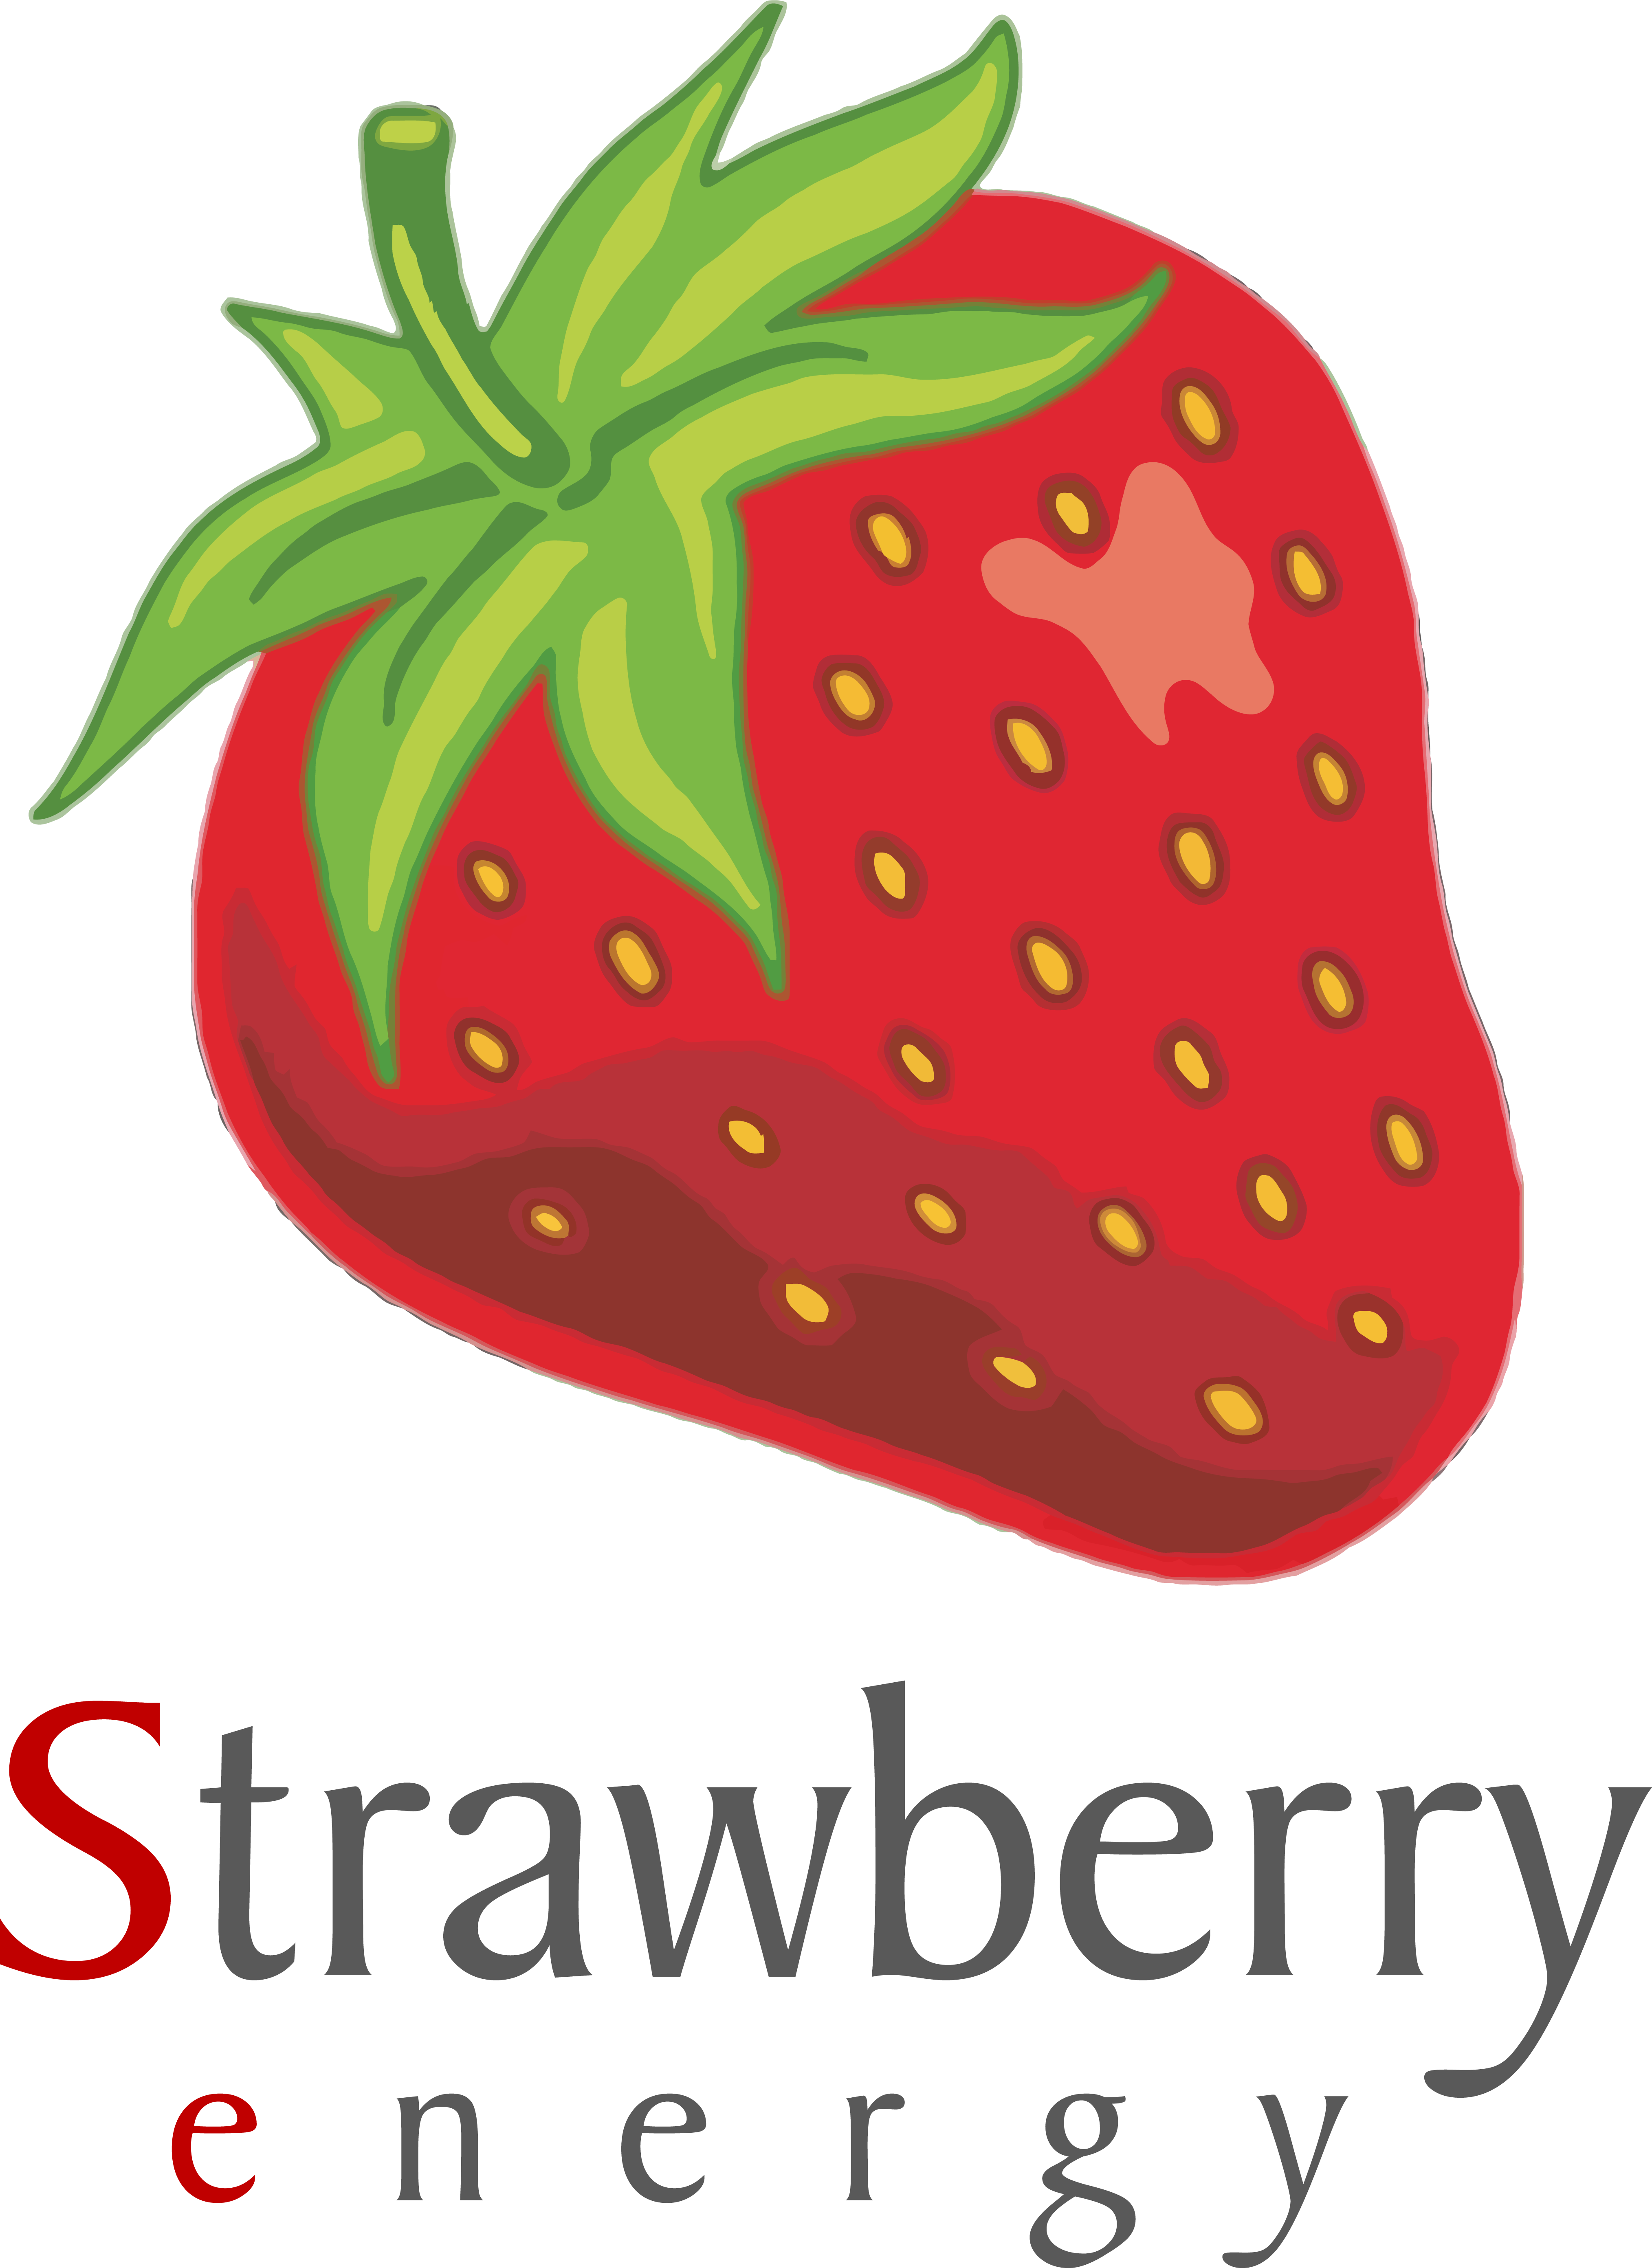 Strawberries clipart strawberry patch. Logos